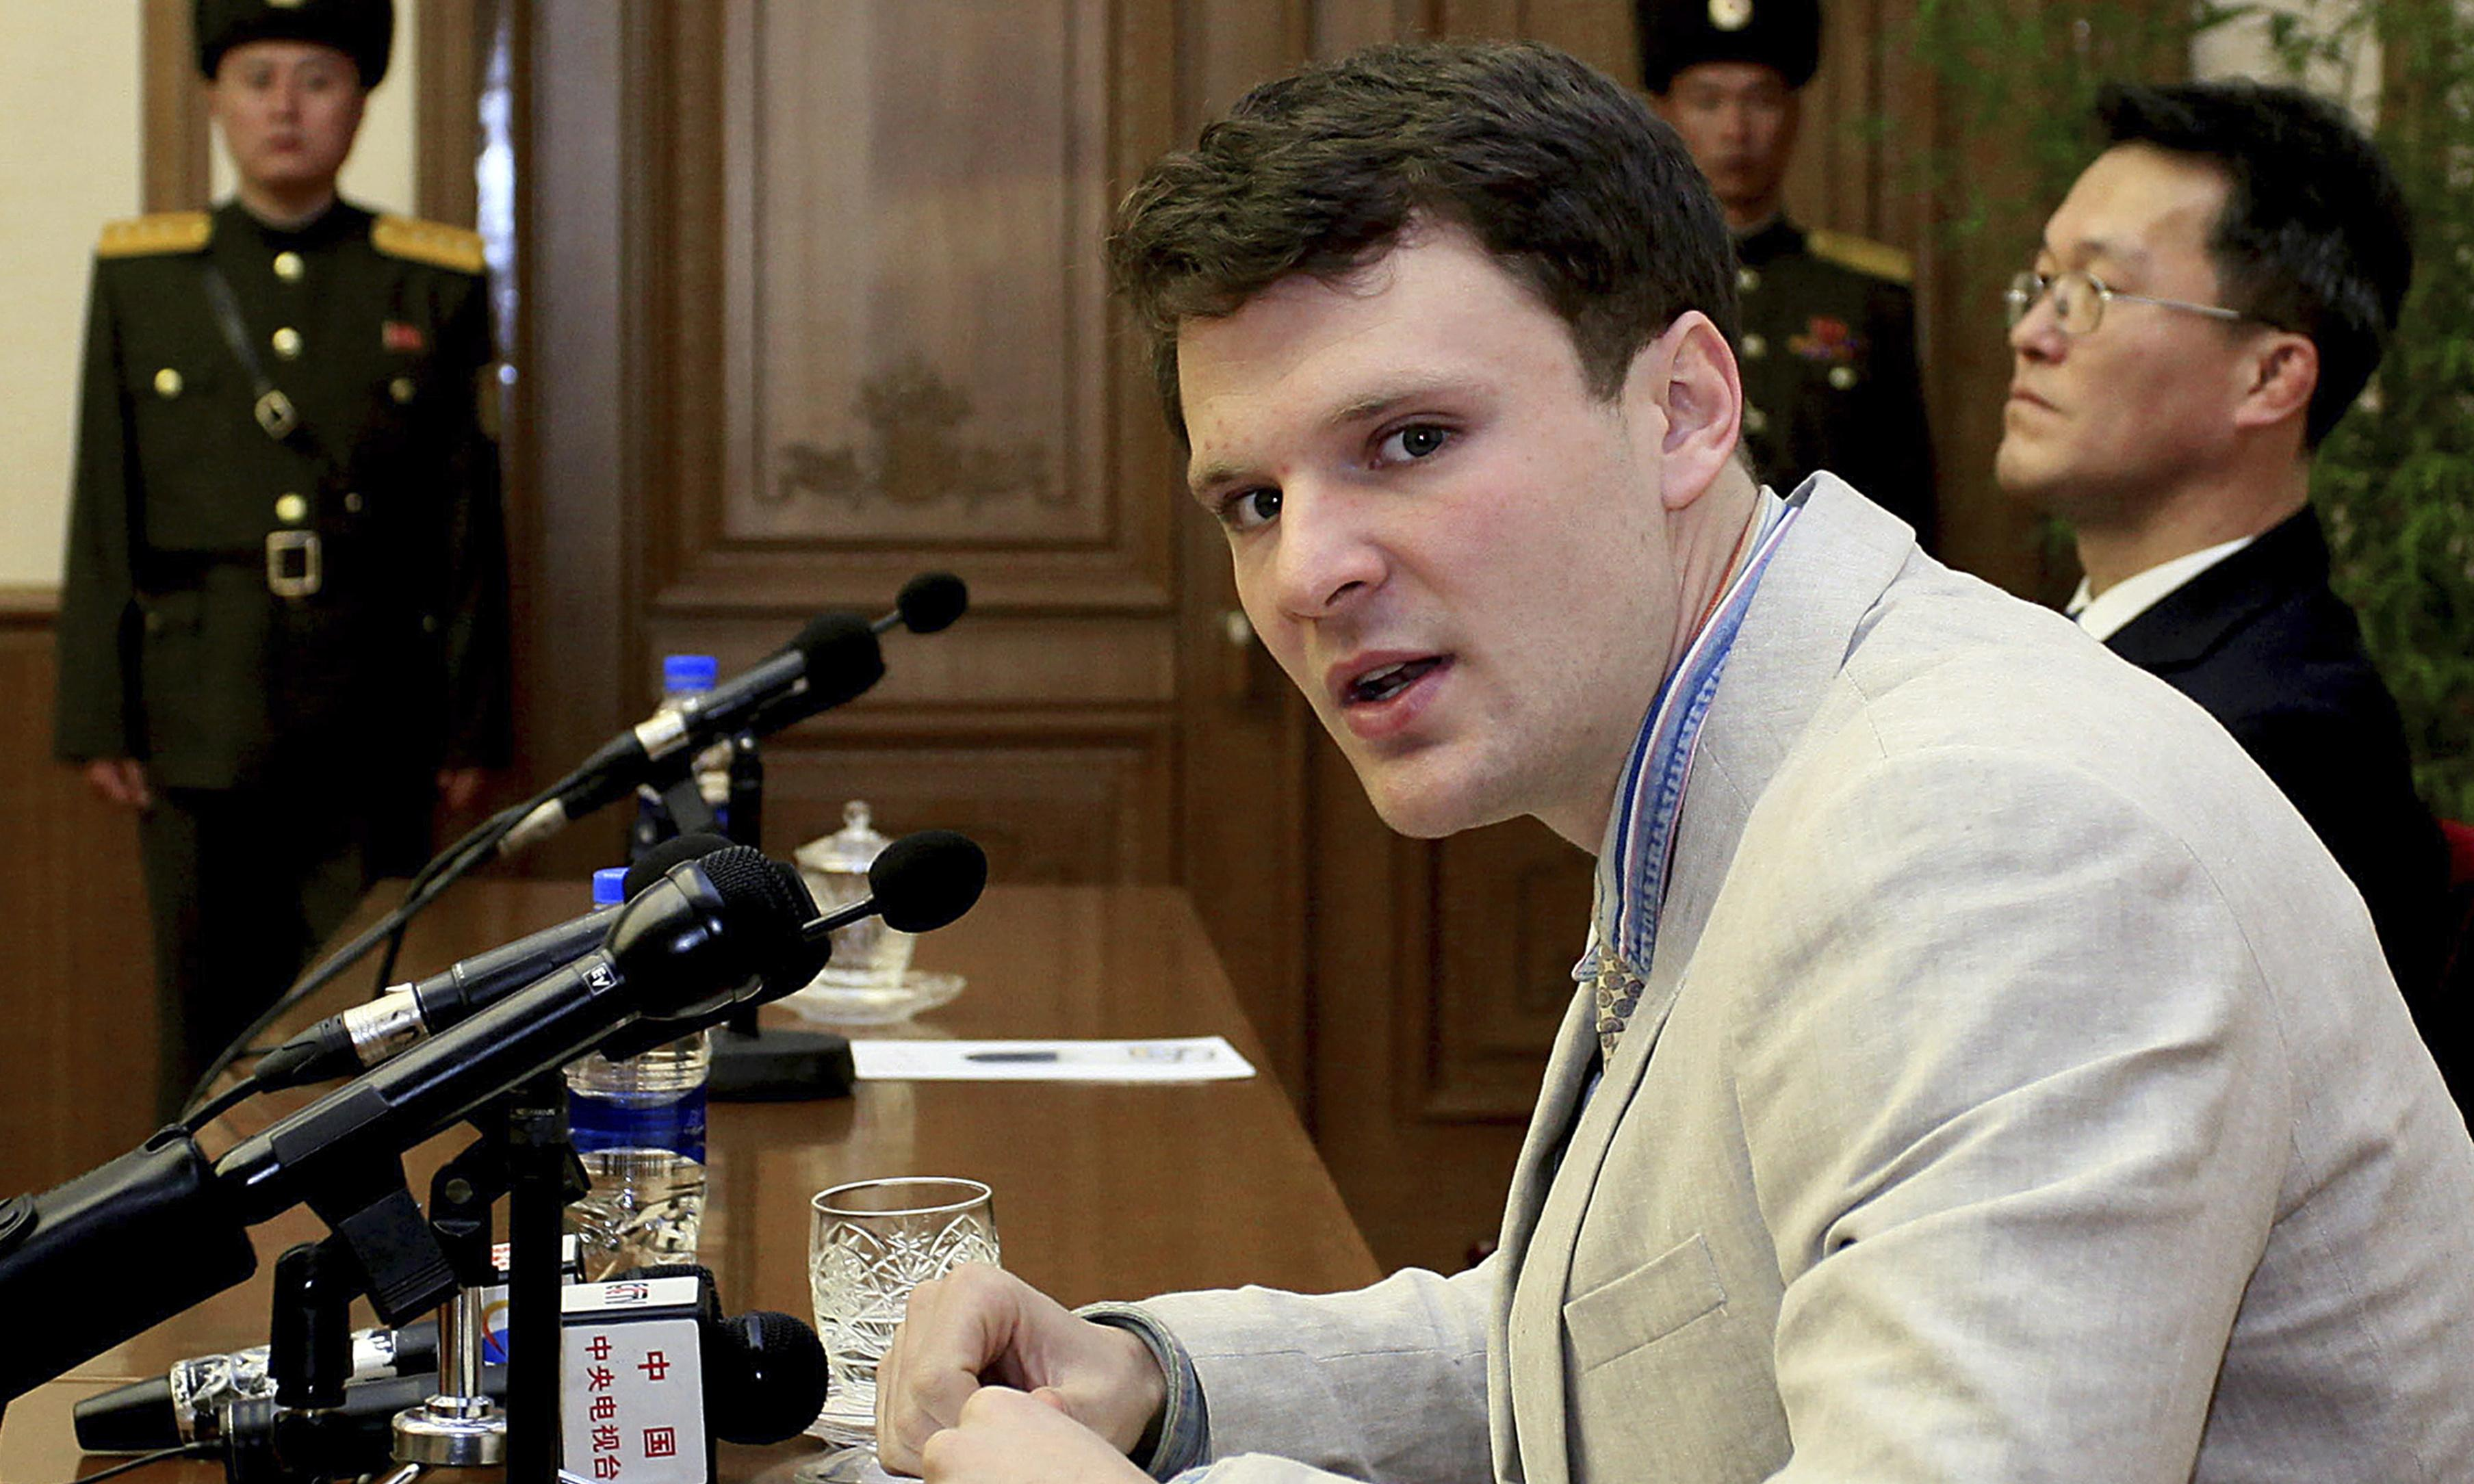 North Korea billed US $2m for Otto Warmbier's hospital care – report